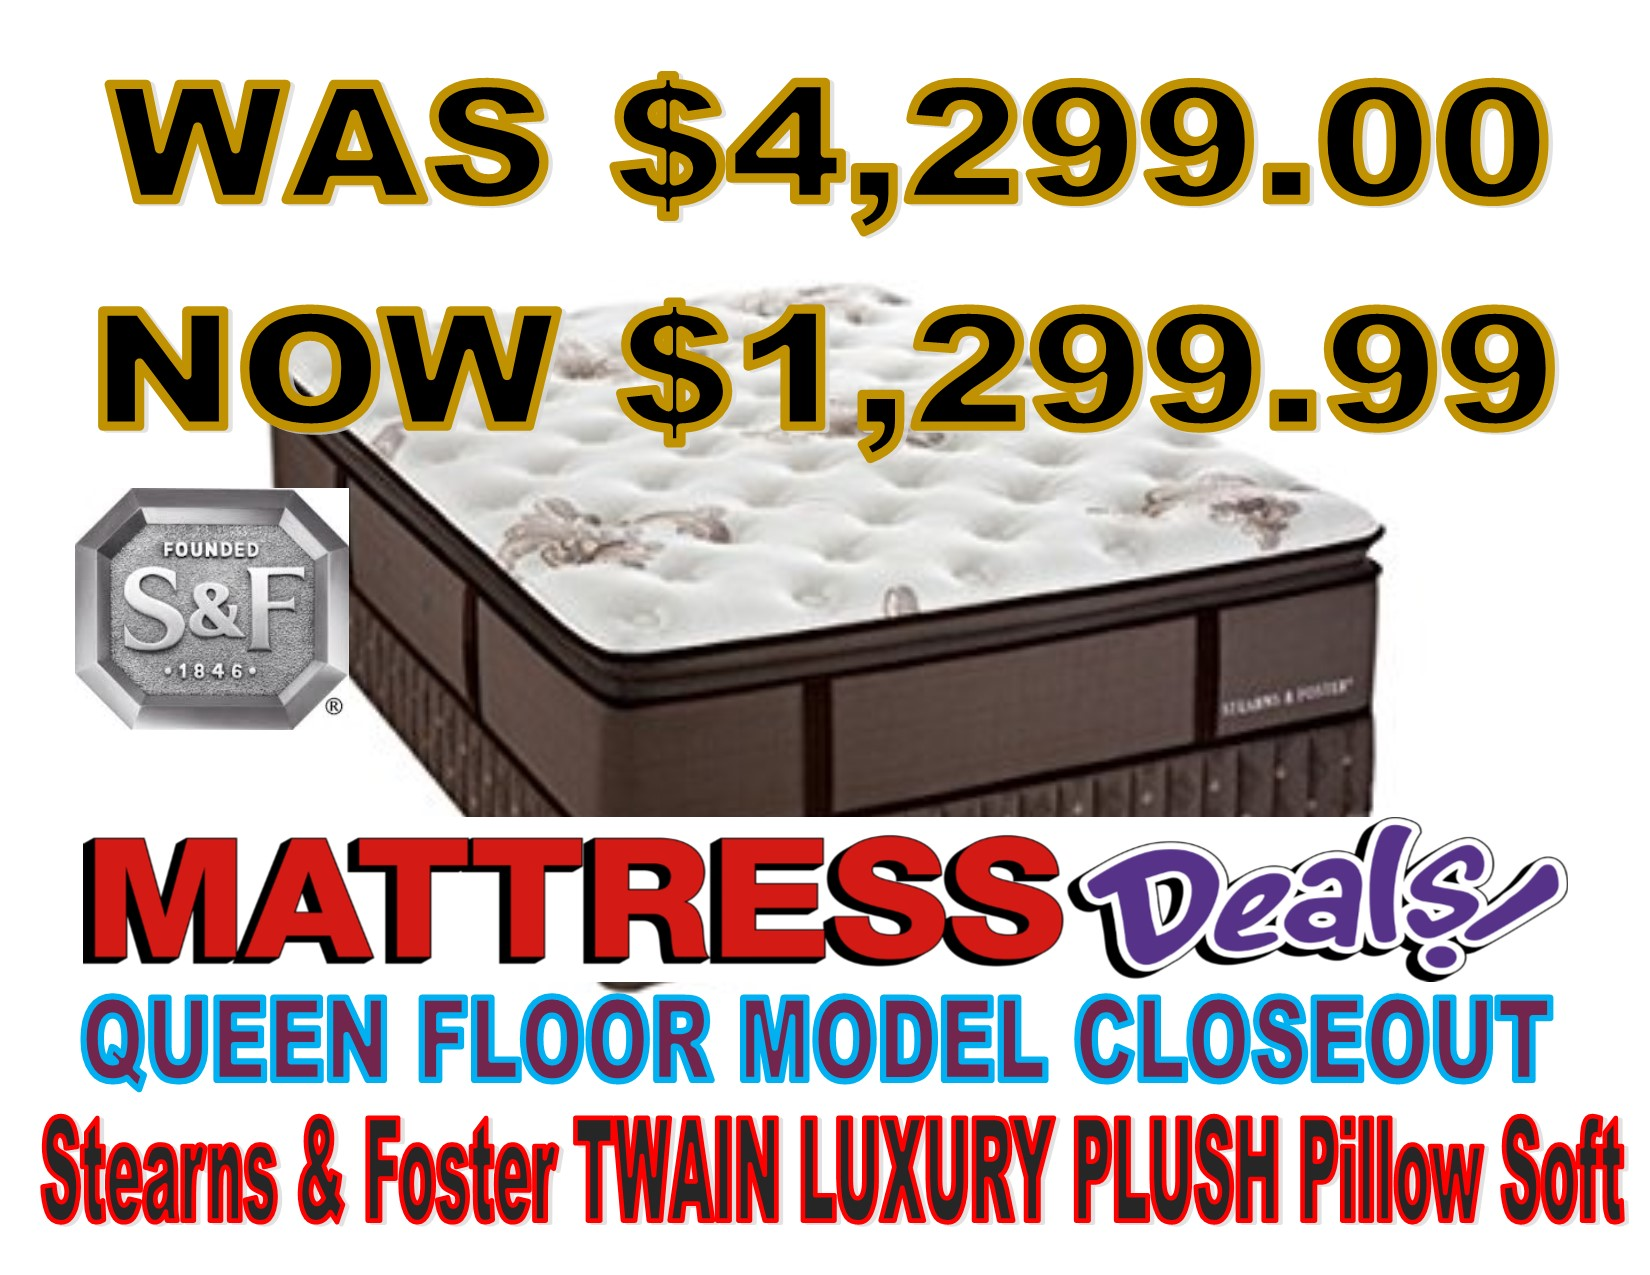 Mattress Deals image 51